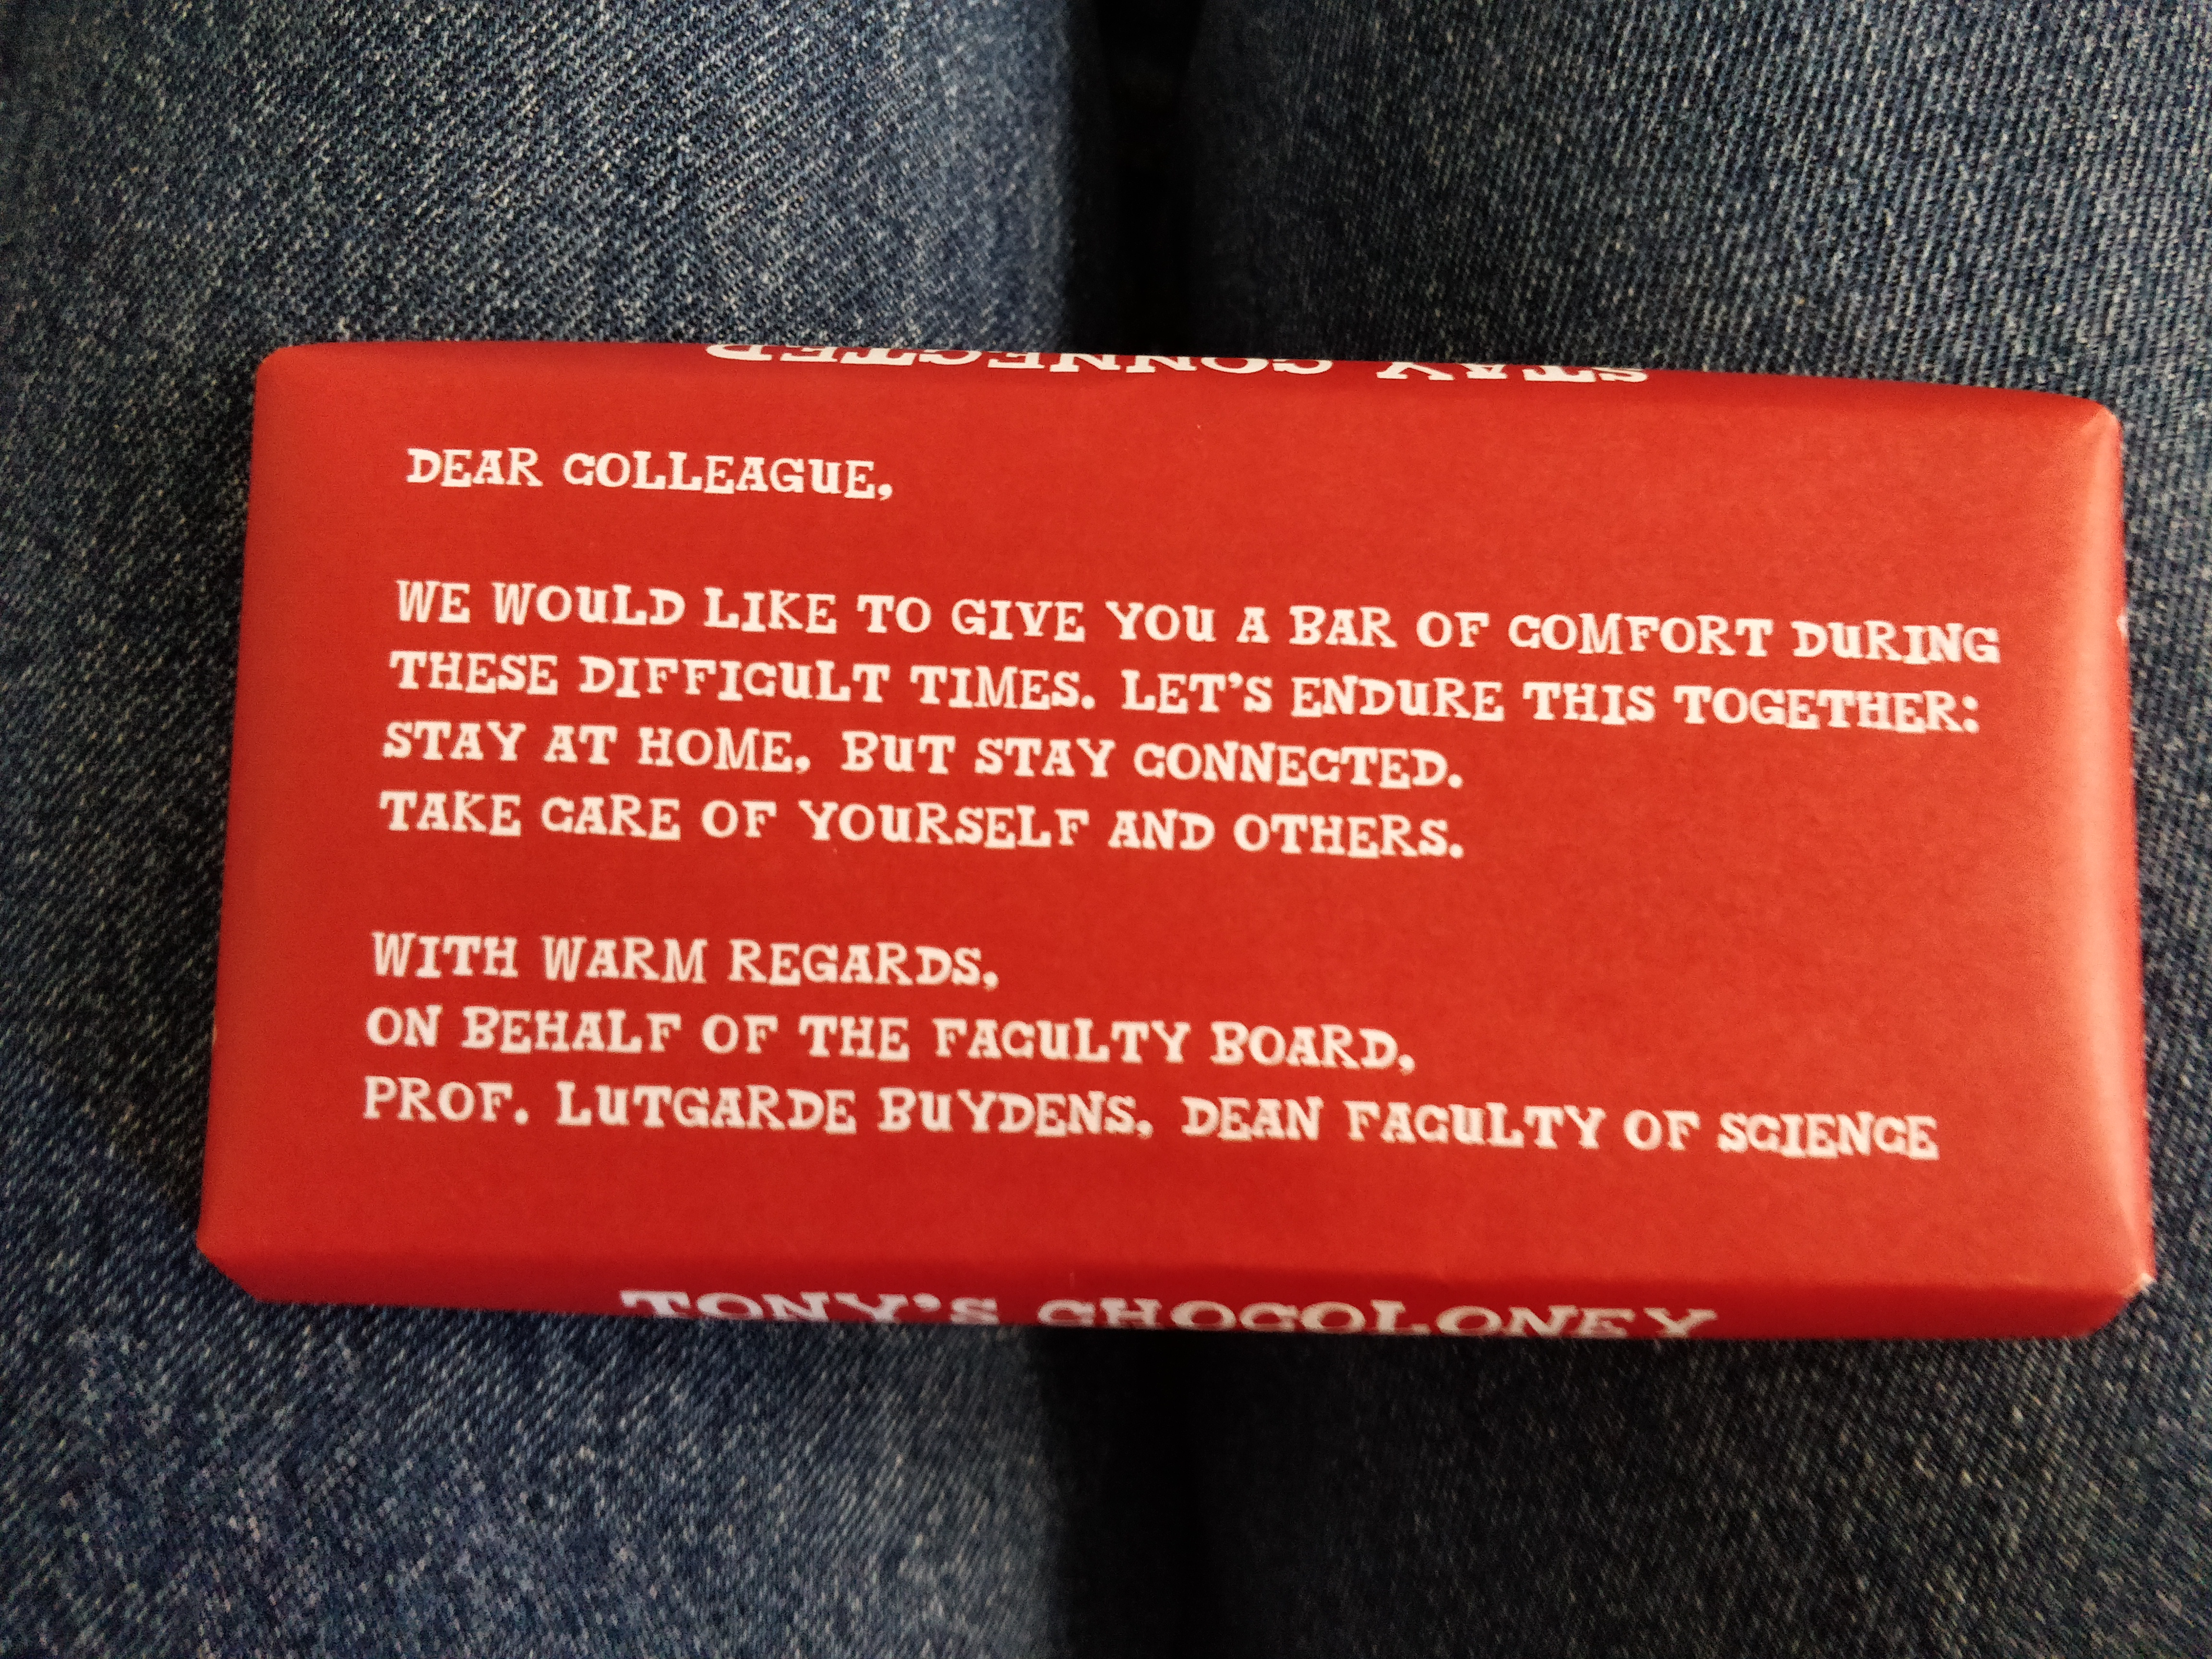 Specially printed wrapper on bar of chocolate.